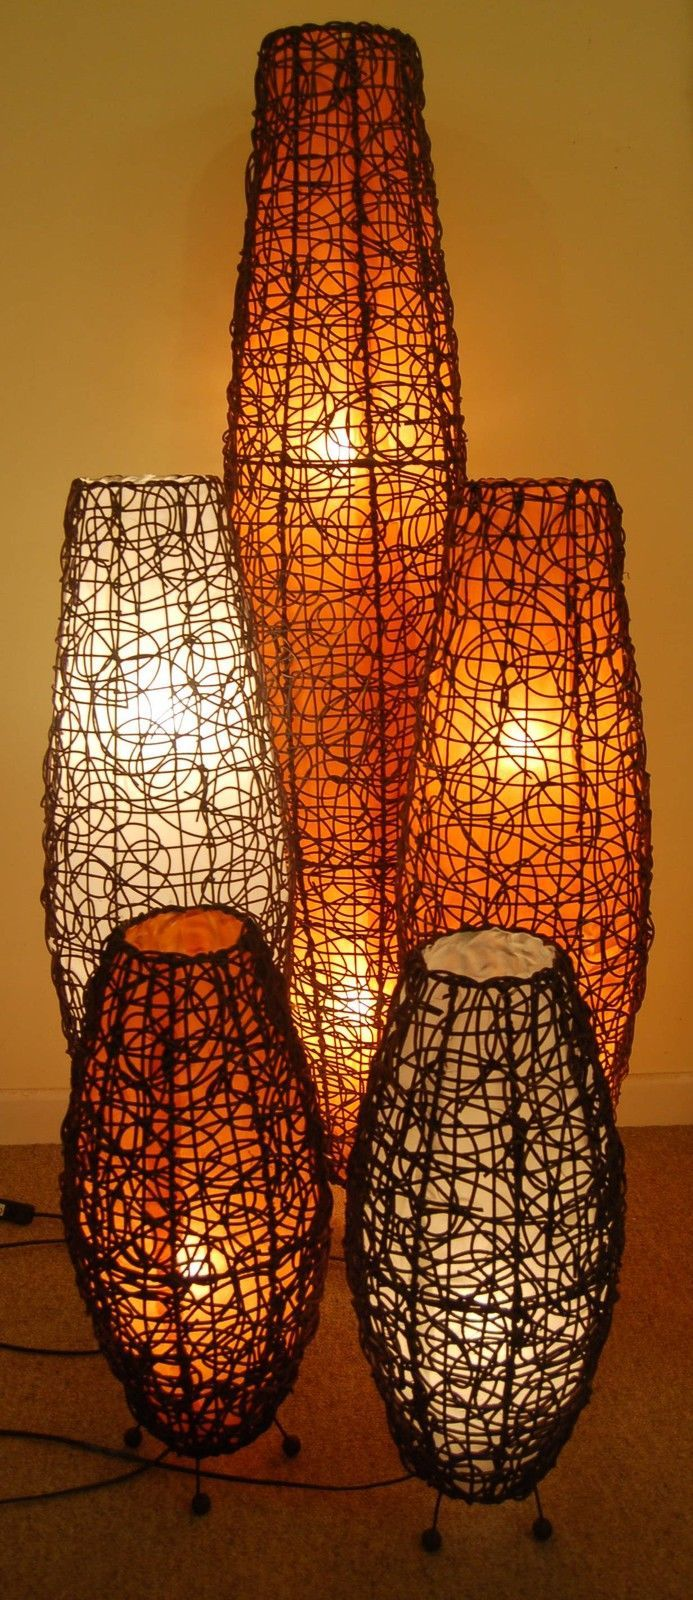 Table Floor Lamp Quot Apollo Quot Lamp With Rattan Handcrafted